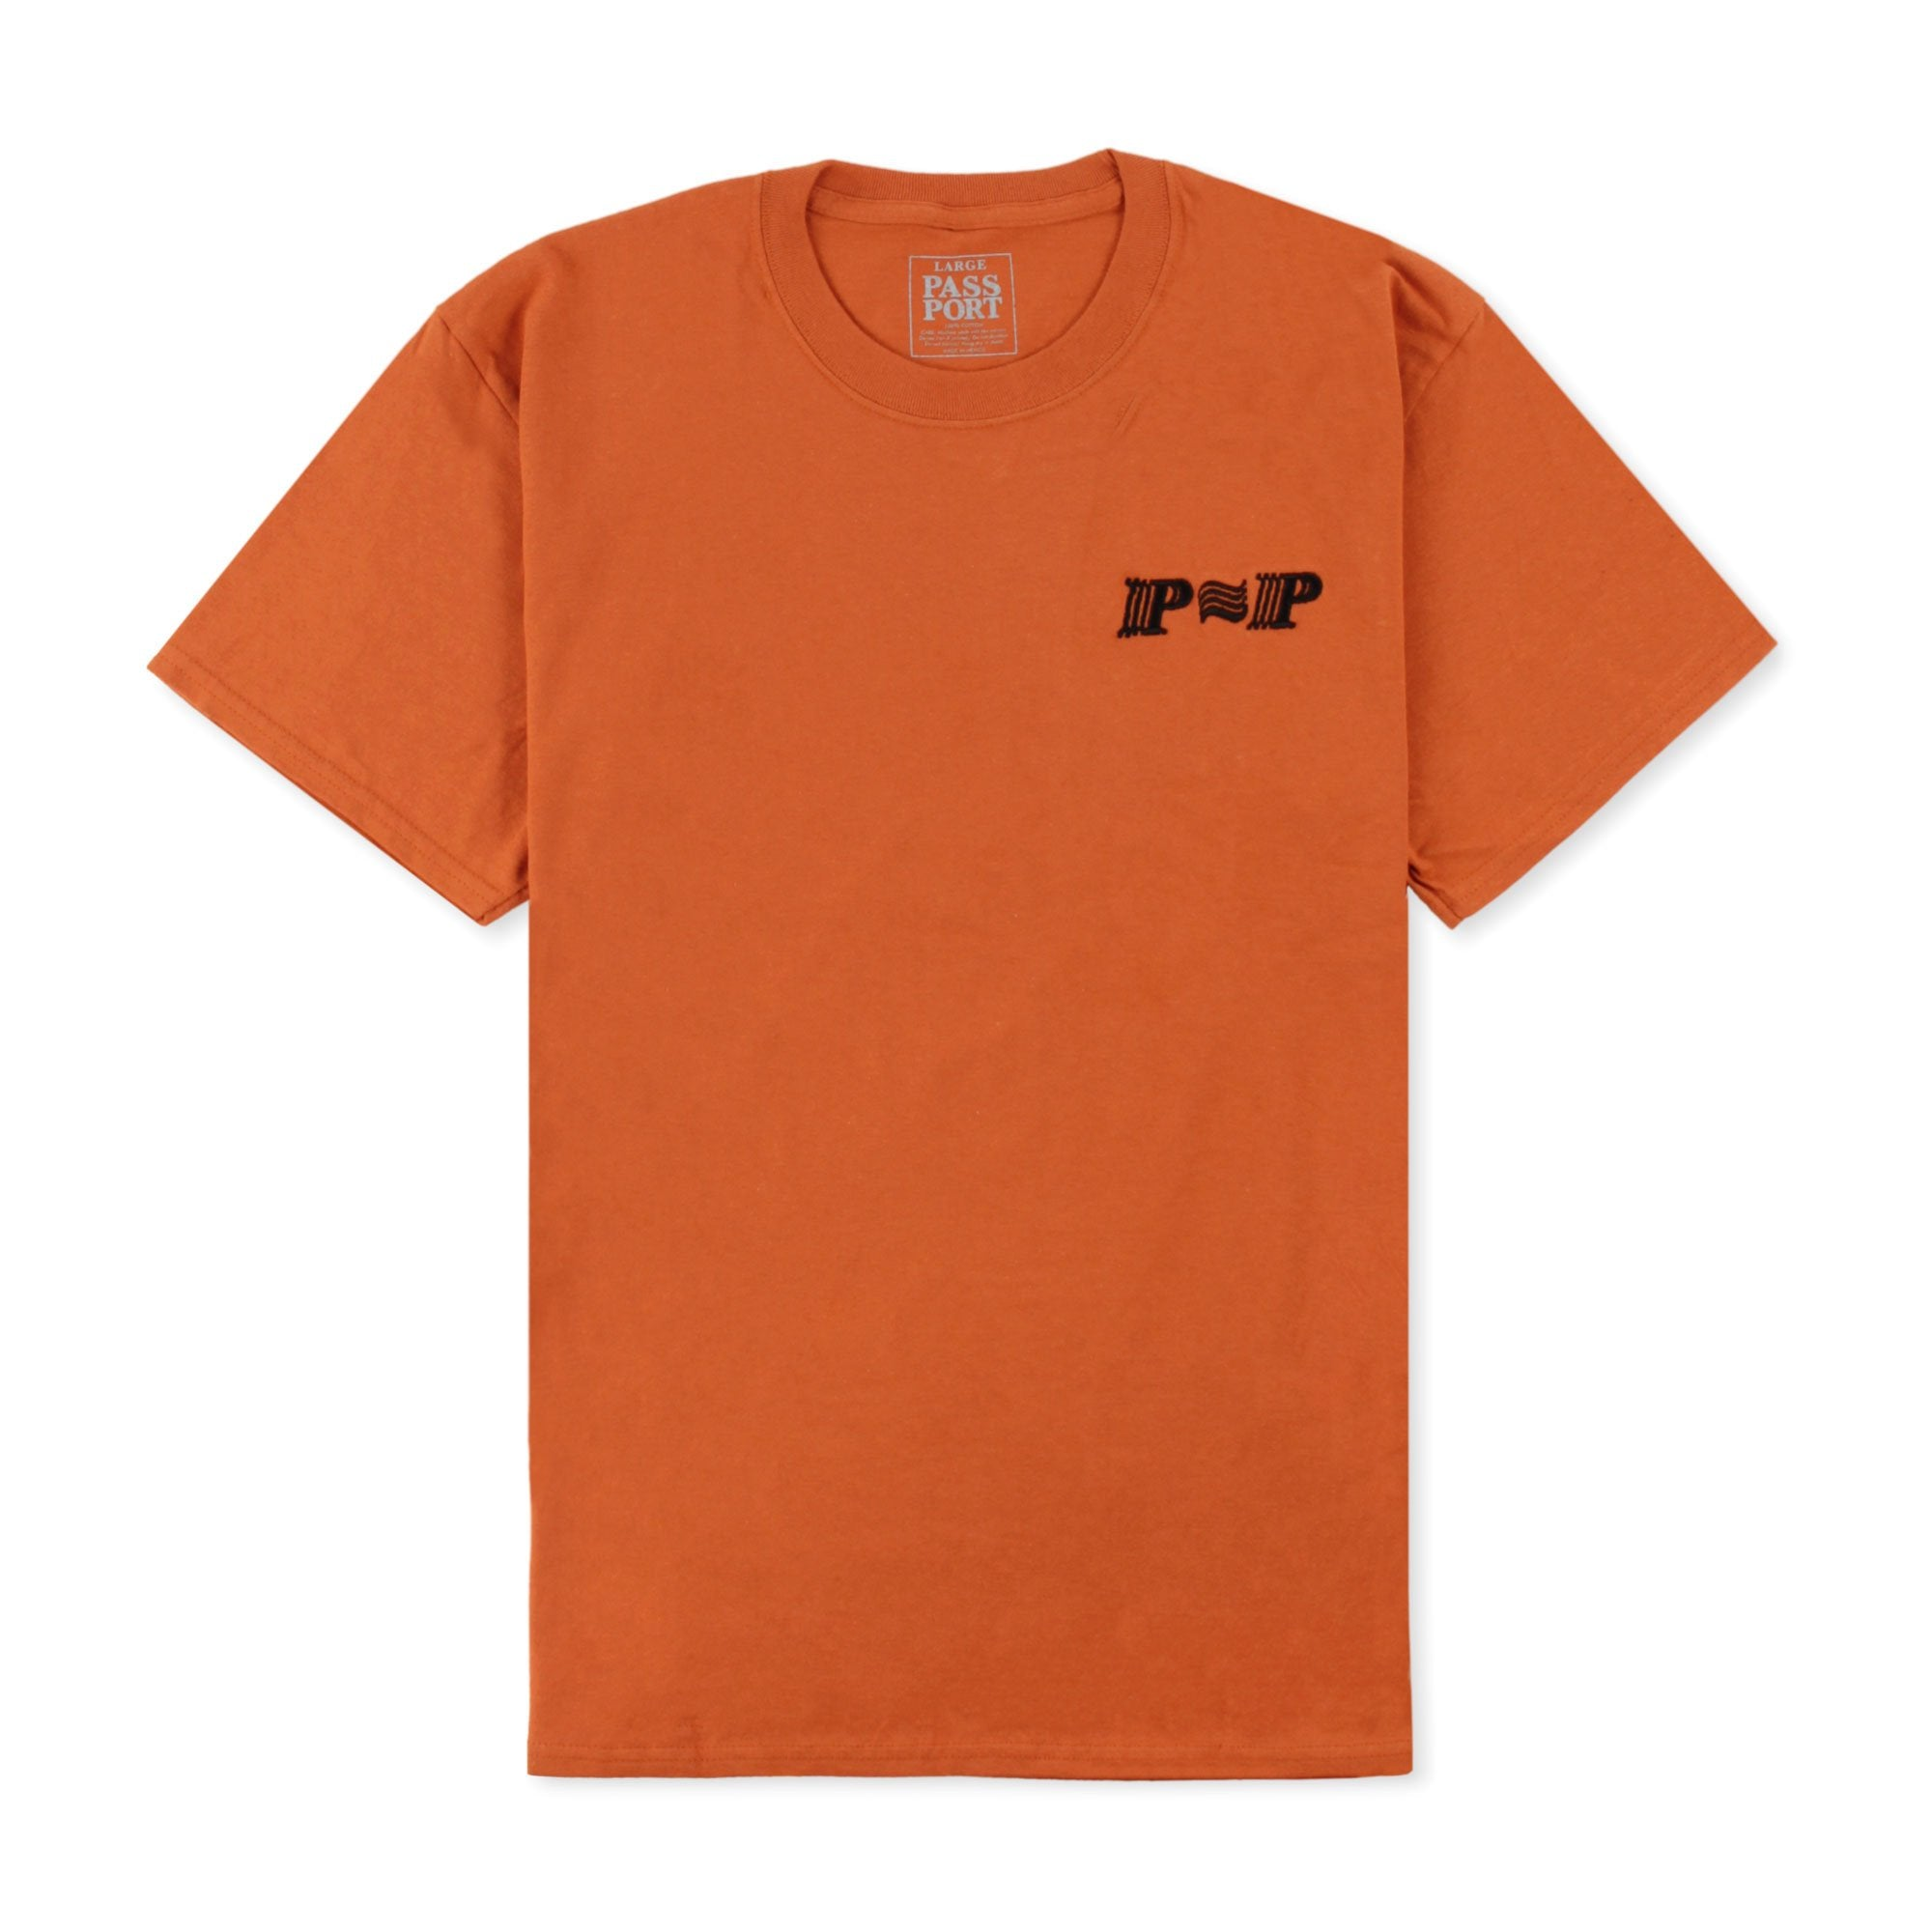 Passport PPP PPP Tee Product Photo #1